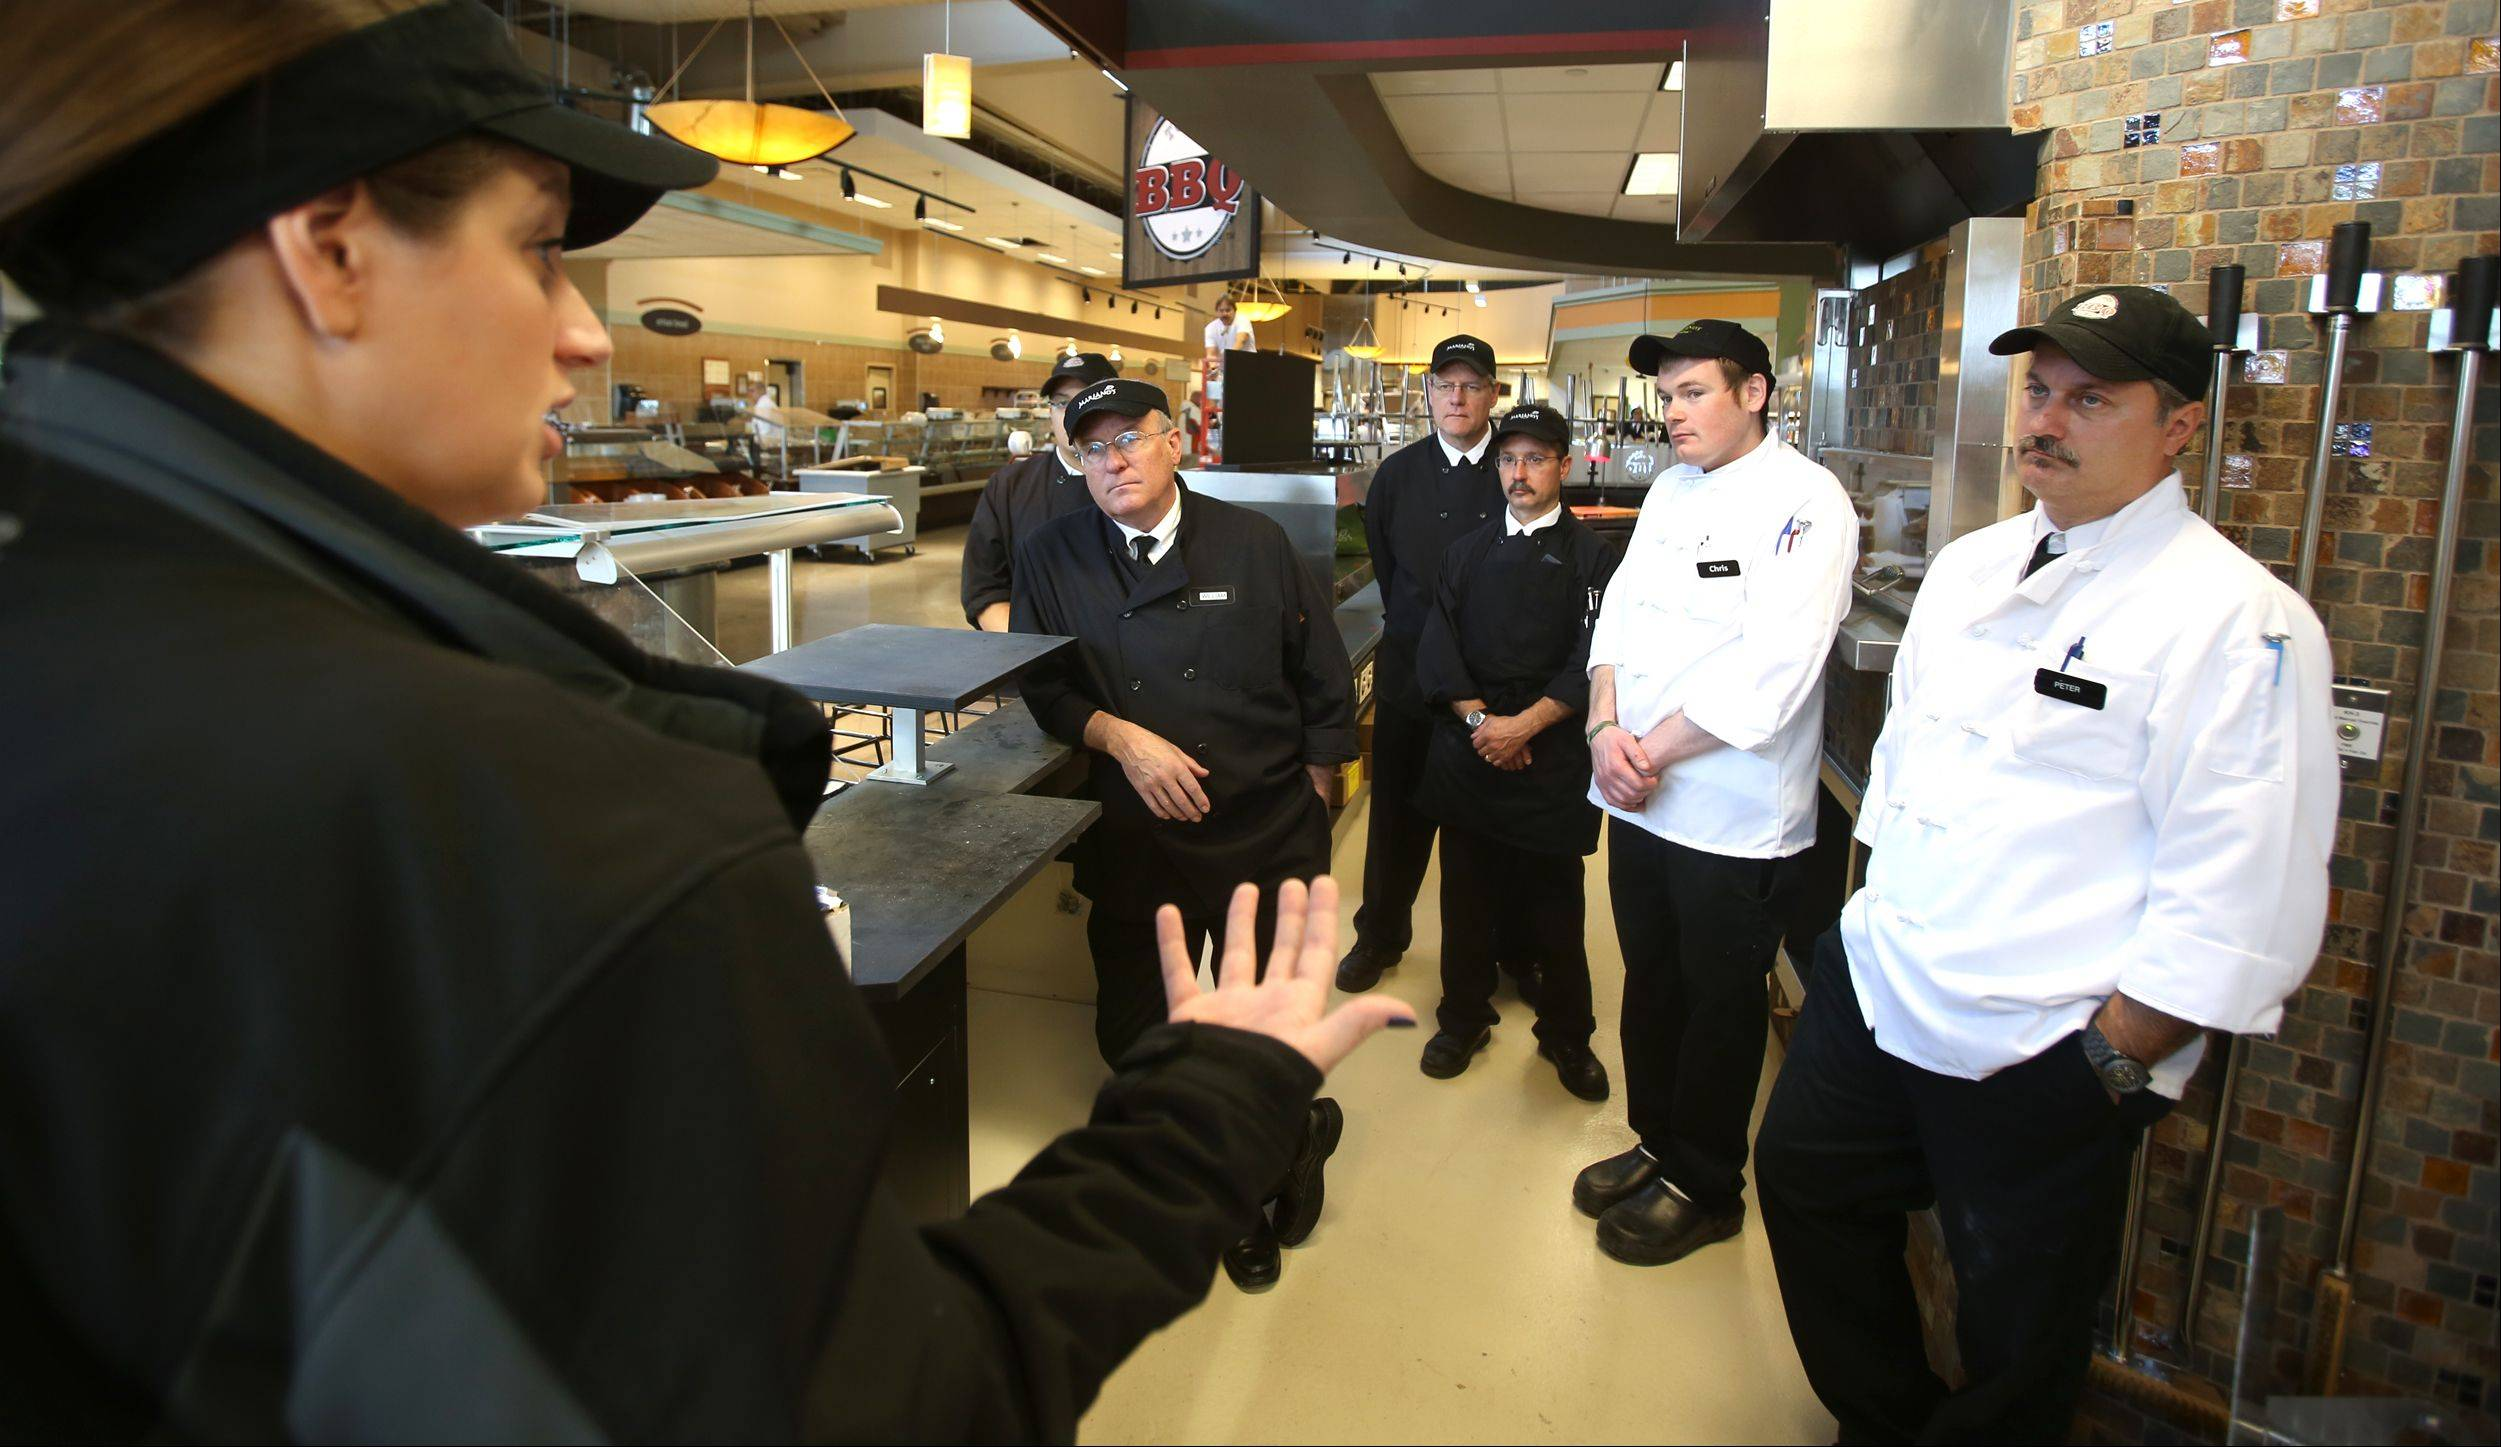 Mary Hess, food safety manager, talks to members of the hot foods department in preparation for Tuesday's grand opening of the Mariano's Fresh Market in Wheaton.